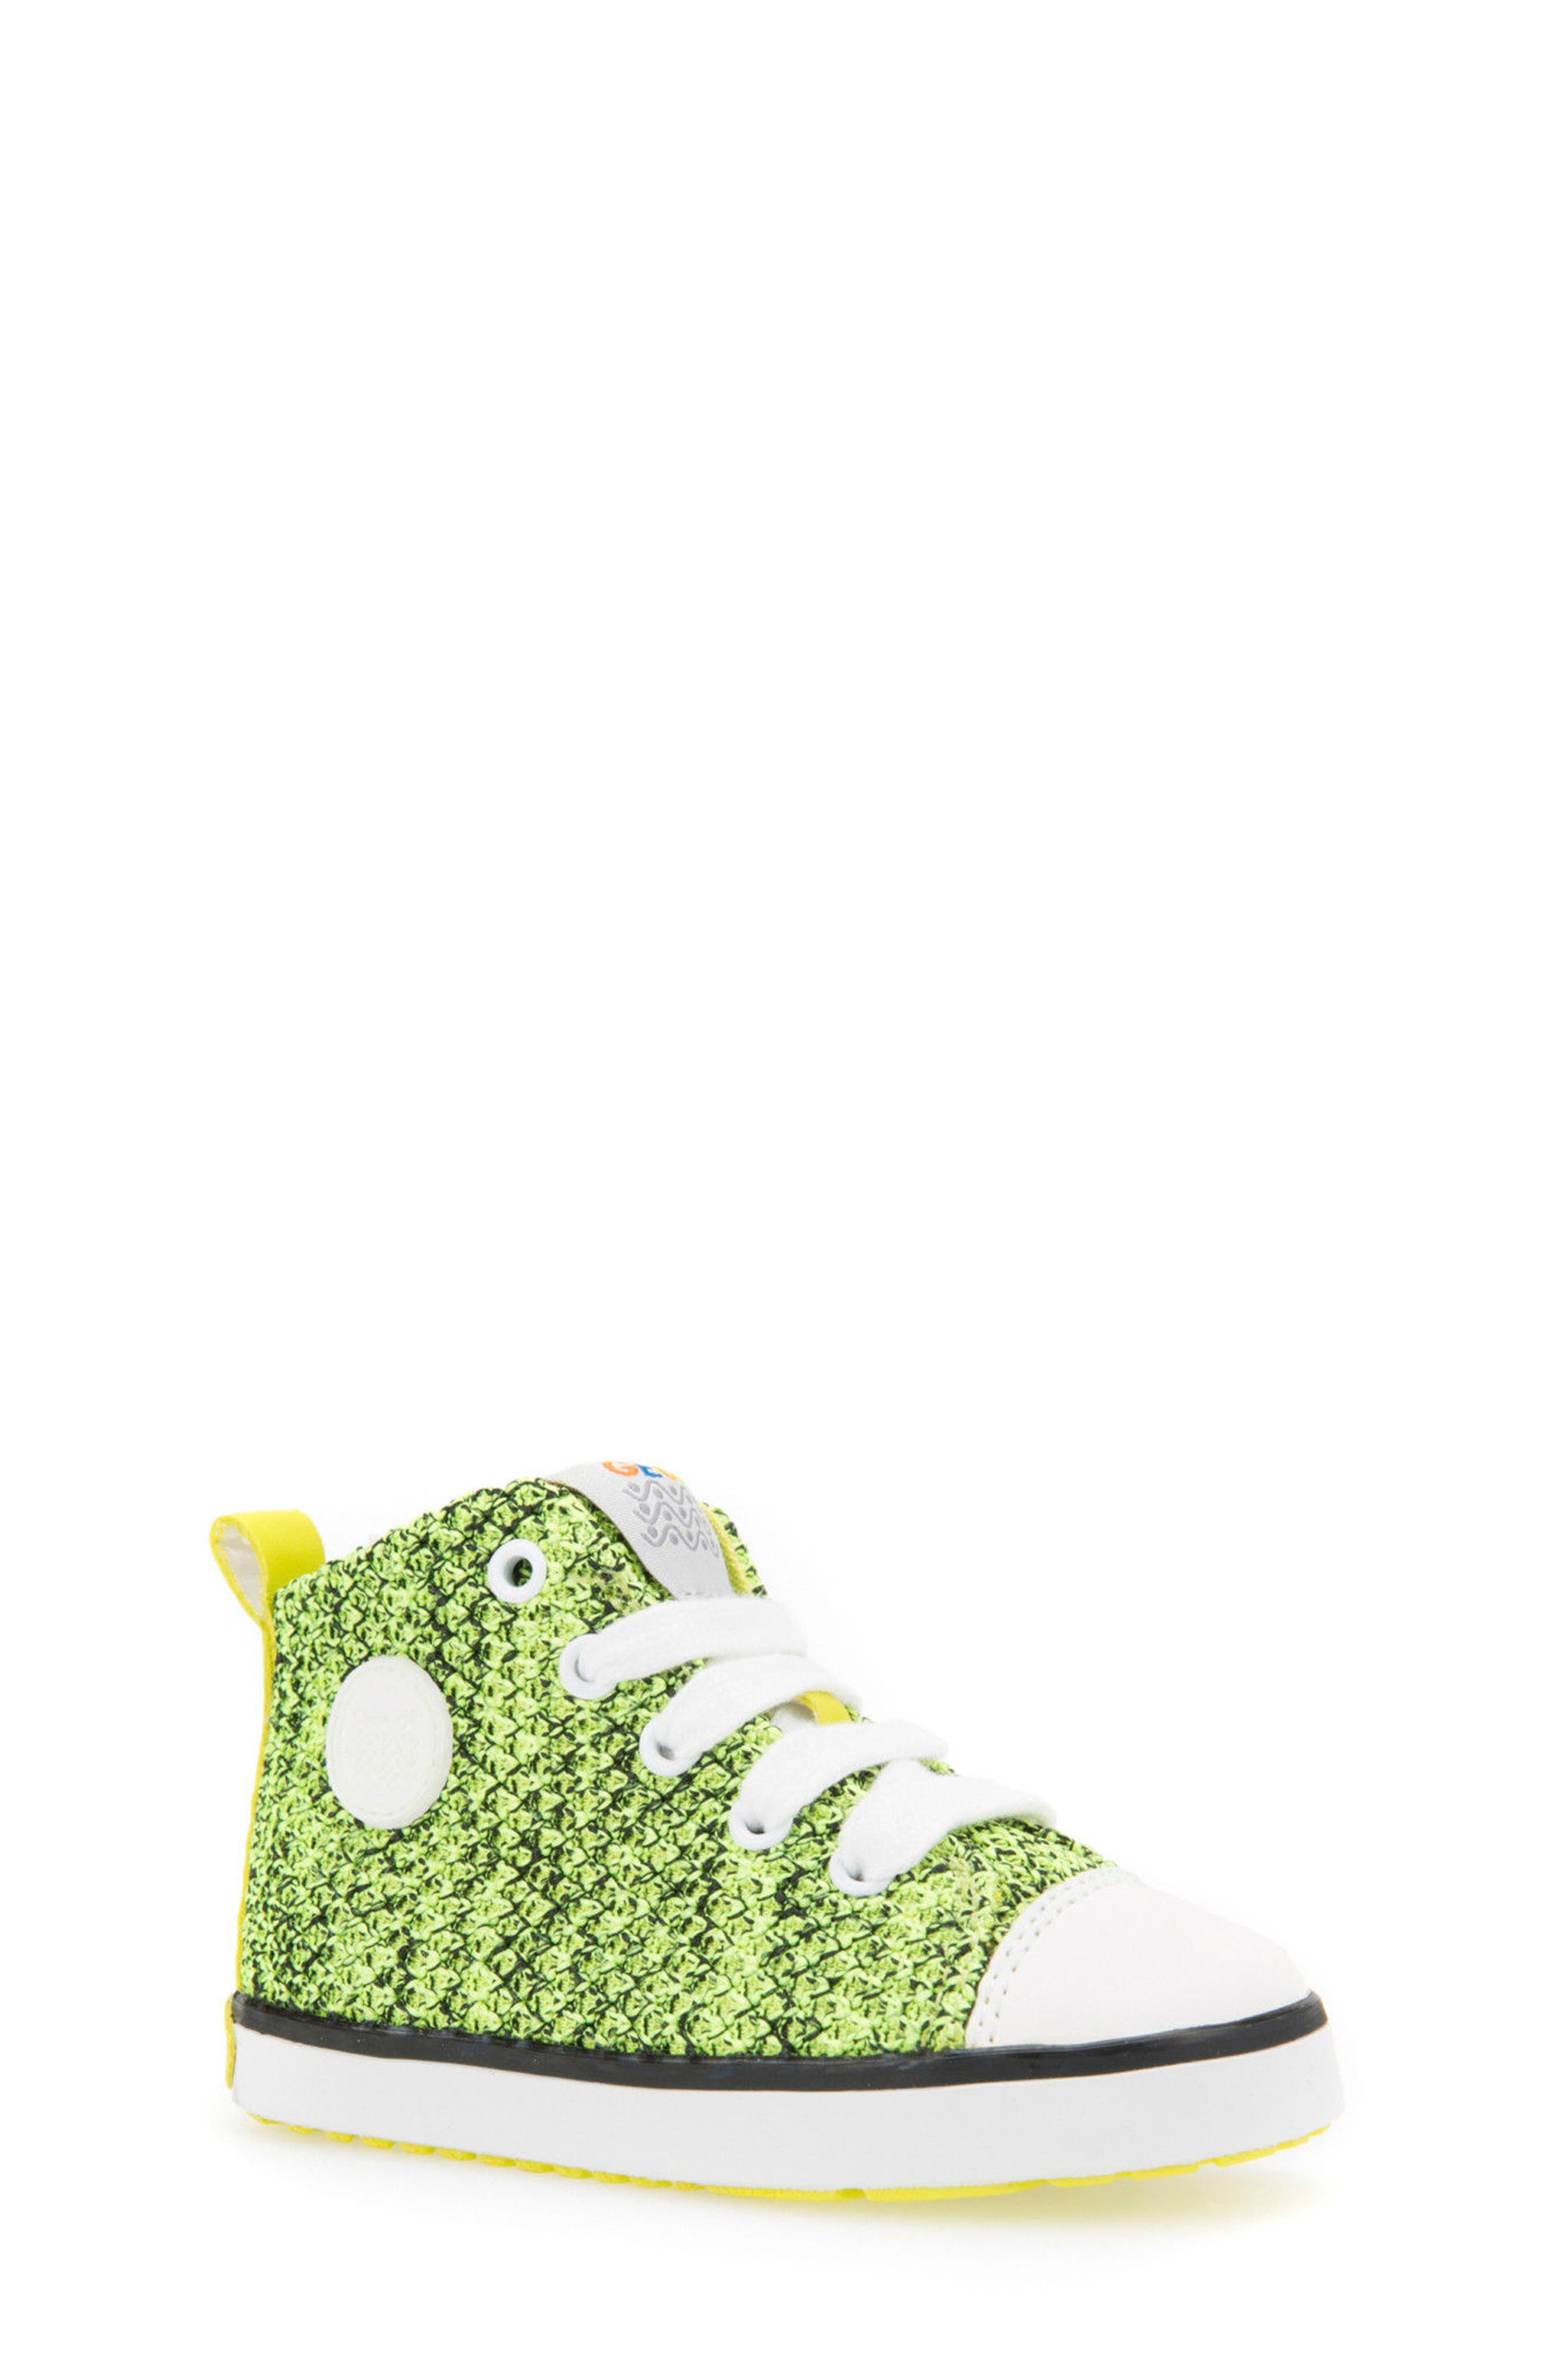 Kilwi Knit High Top Sneaker,                         Main,                         color, LIME GREEN